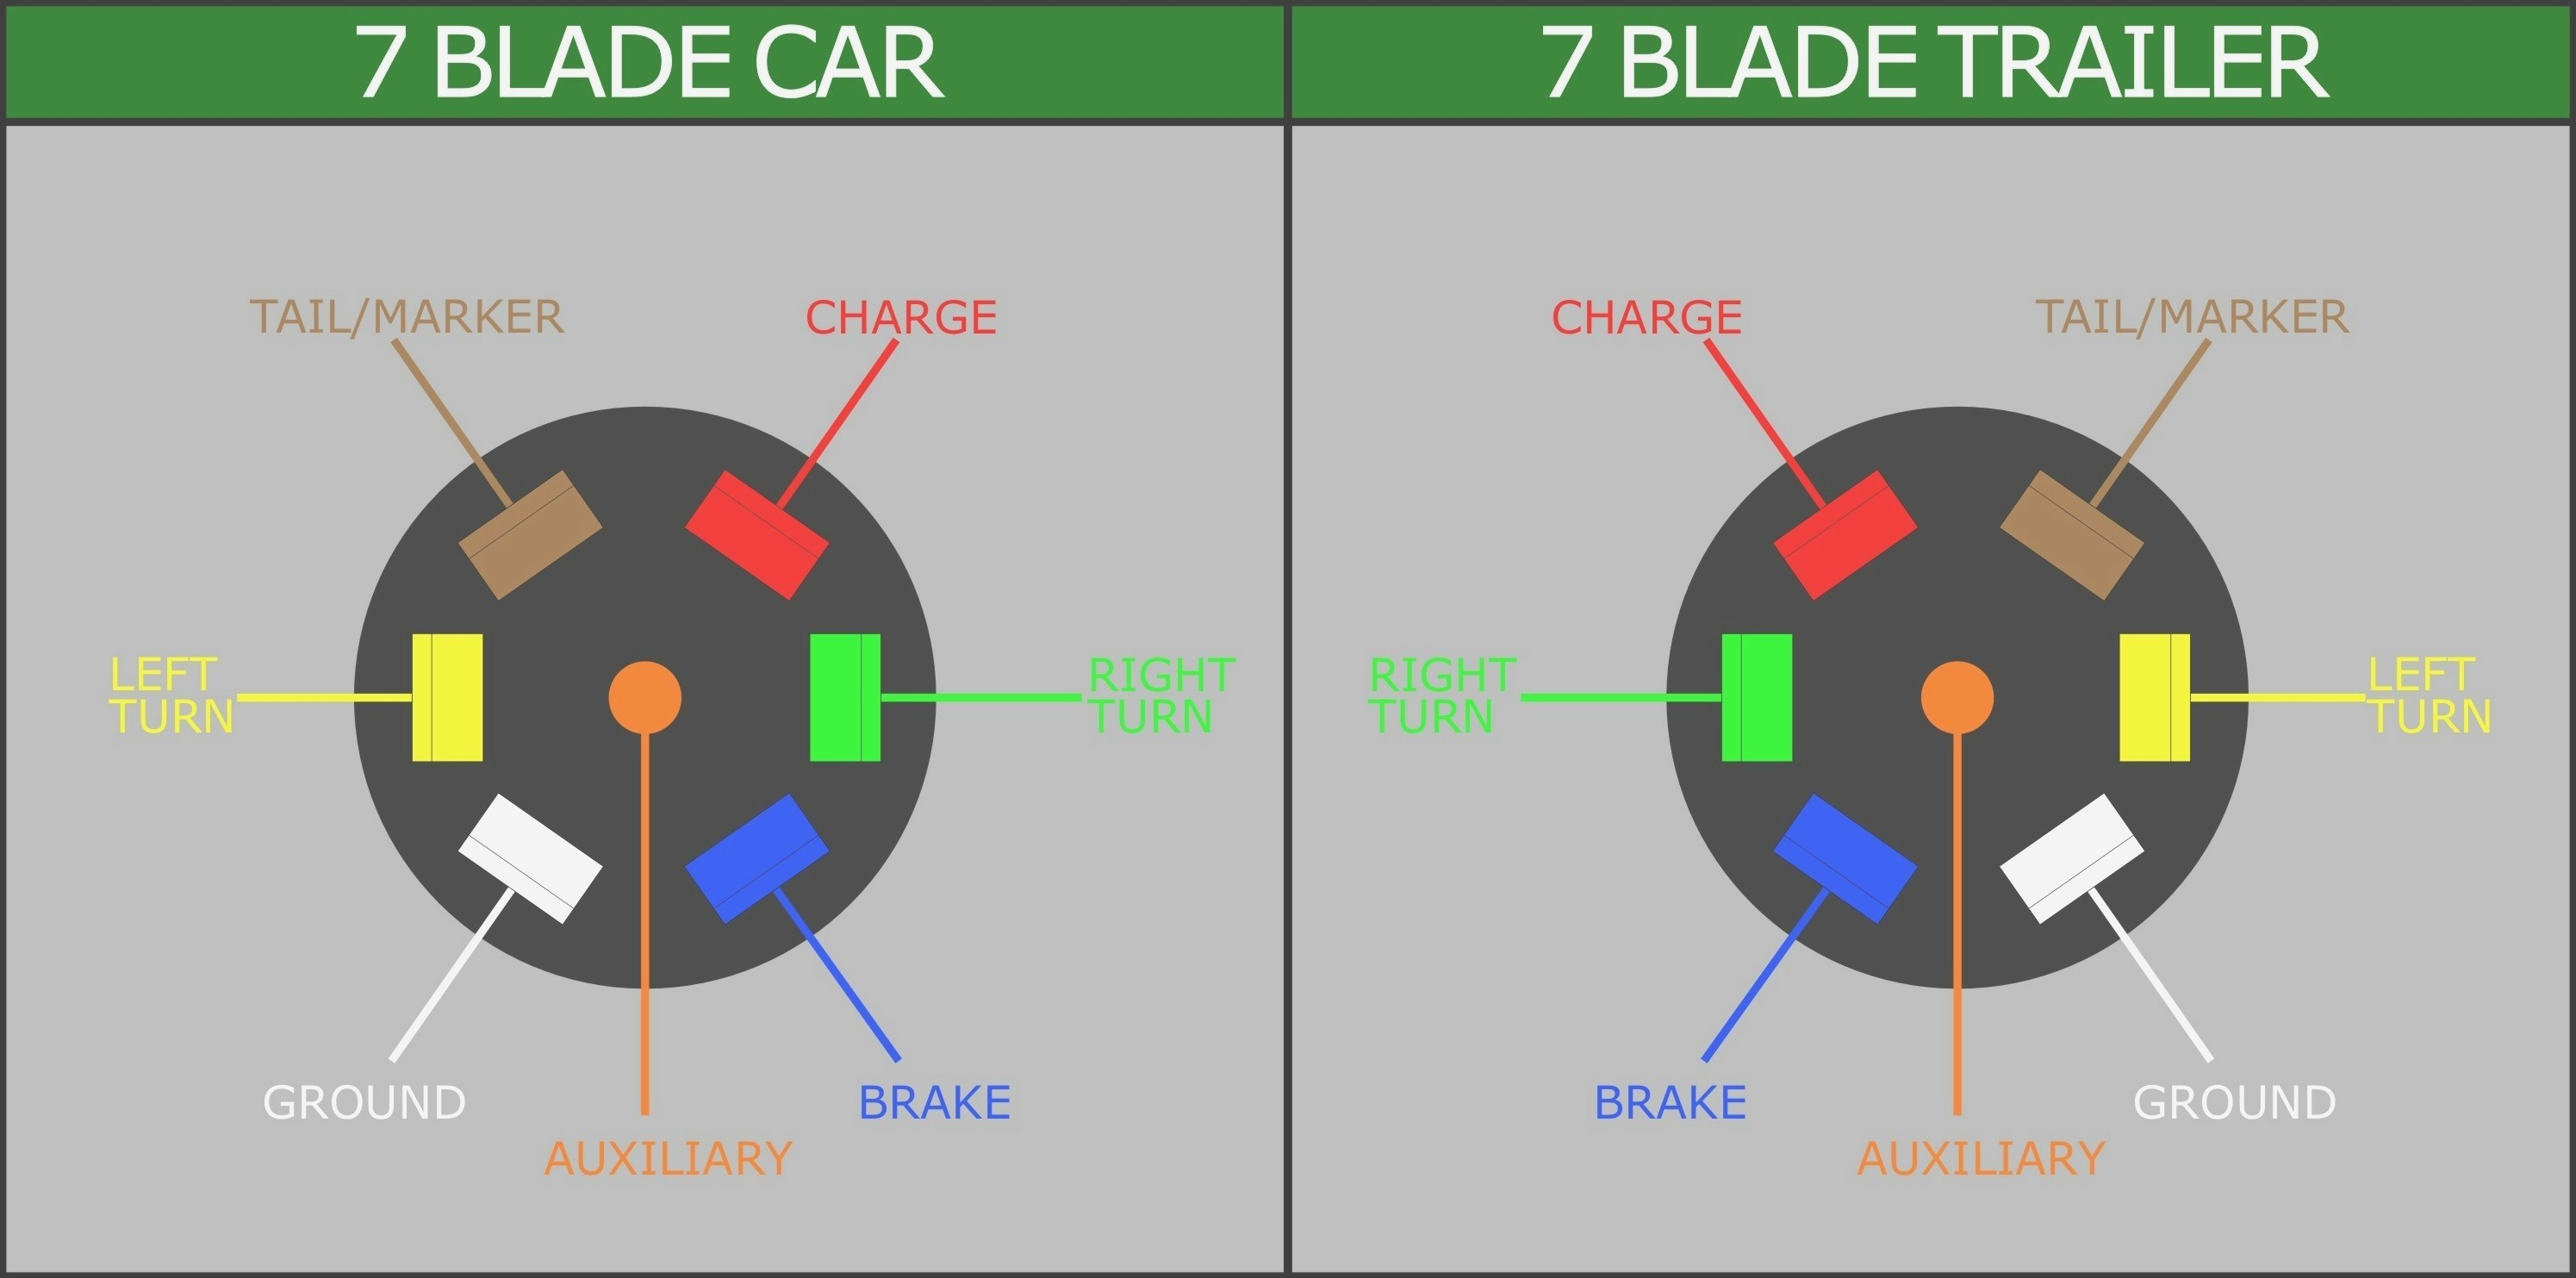 7 Blade Trailer Wiring Diagram Wire Color - Wiring Diagrams Thumbs - Trailer Cord Wiring Diagram